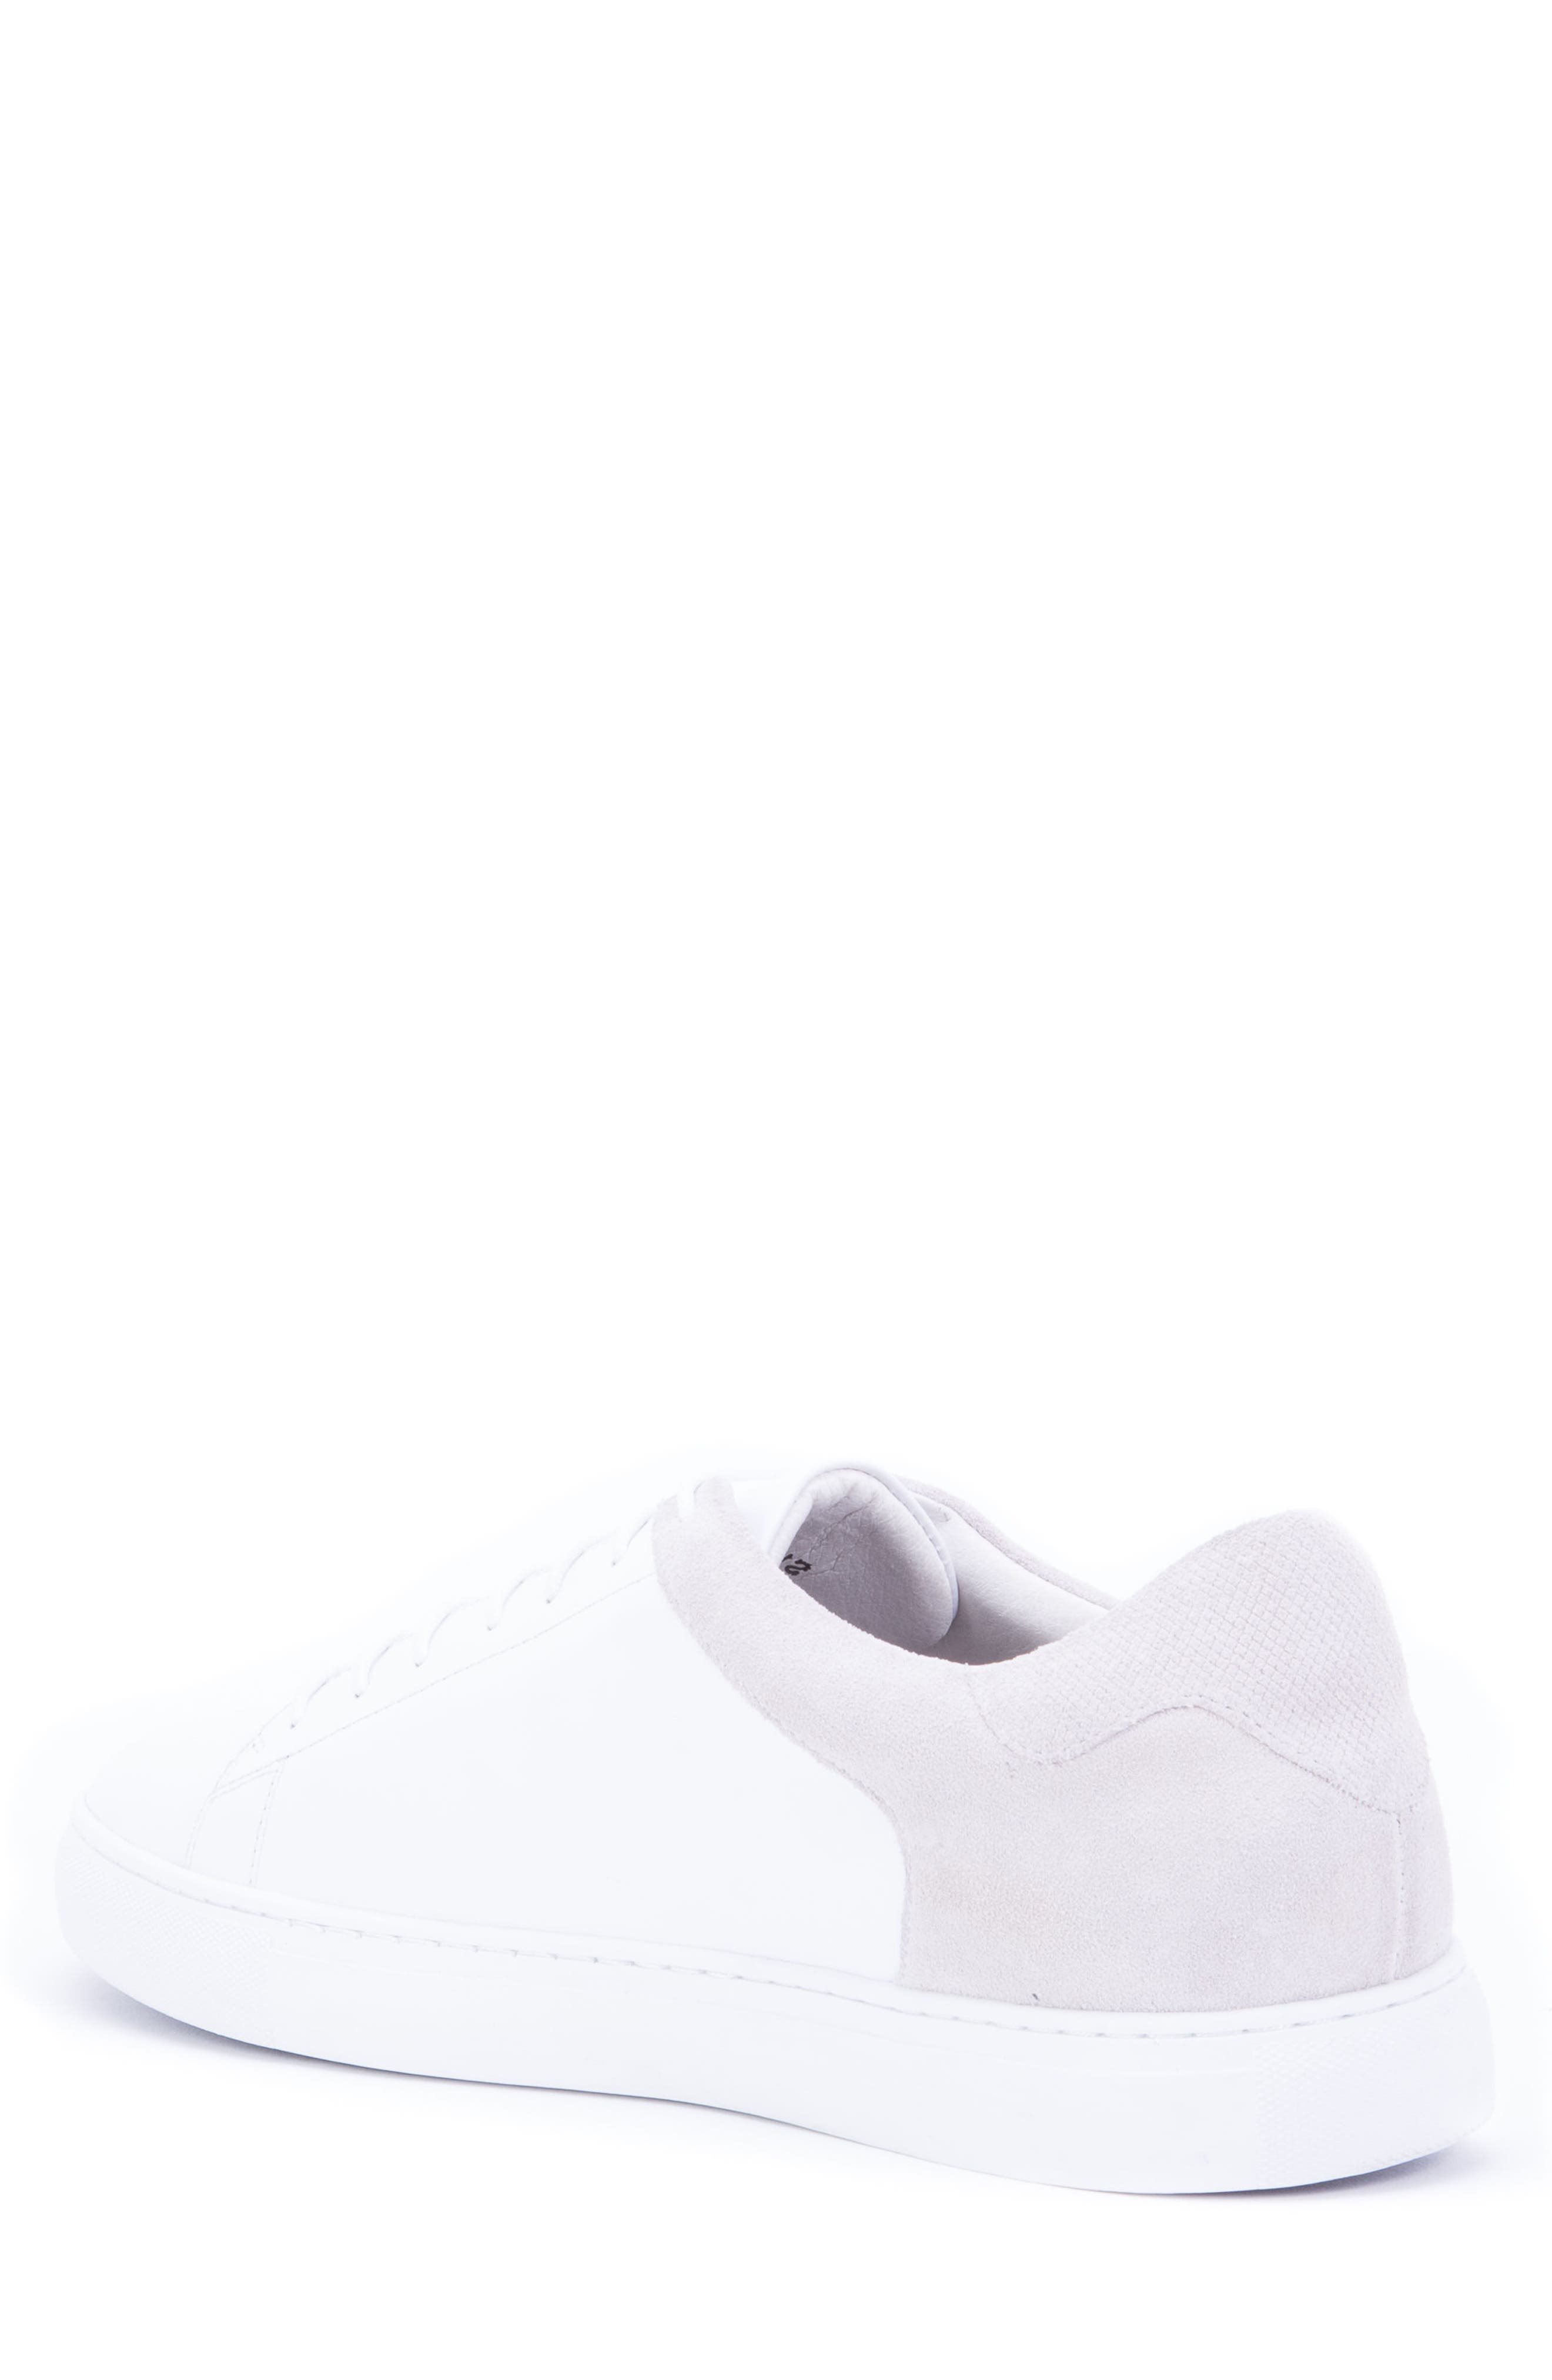 Cue Low Top Sneaker,                             Alternate thumbnail 2, color,                             WHITE LEATHER/ SUEDE